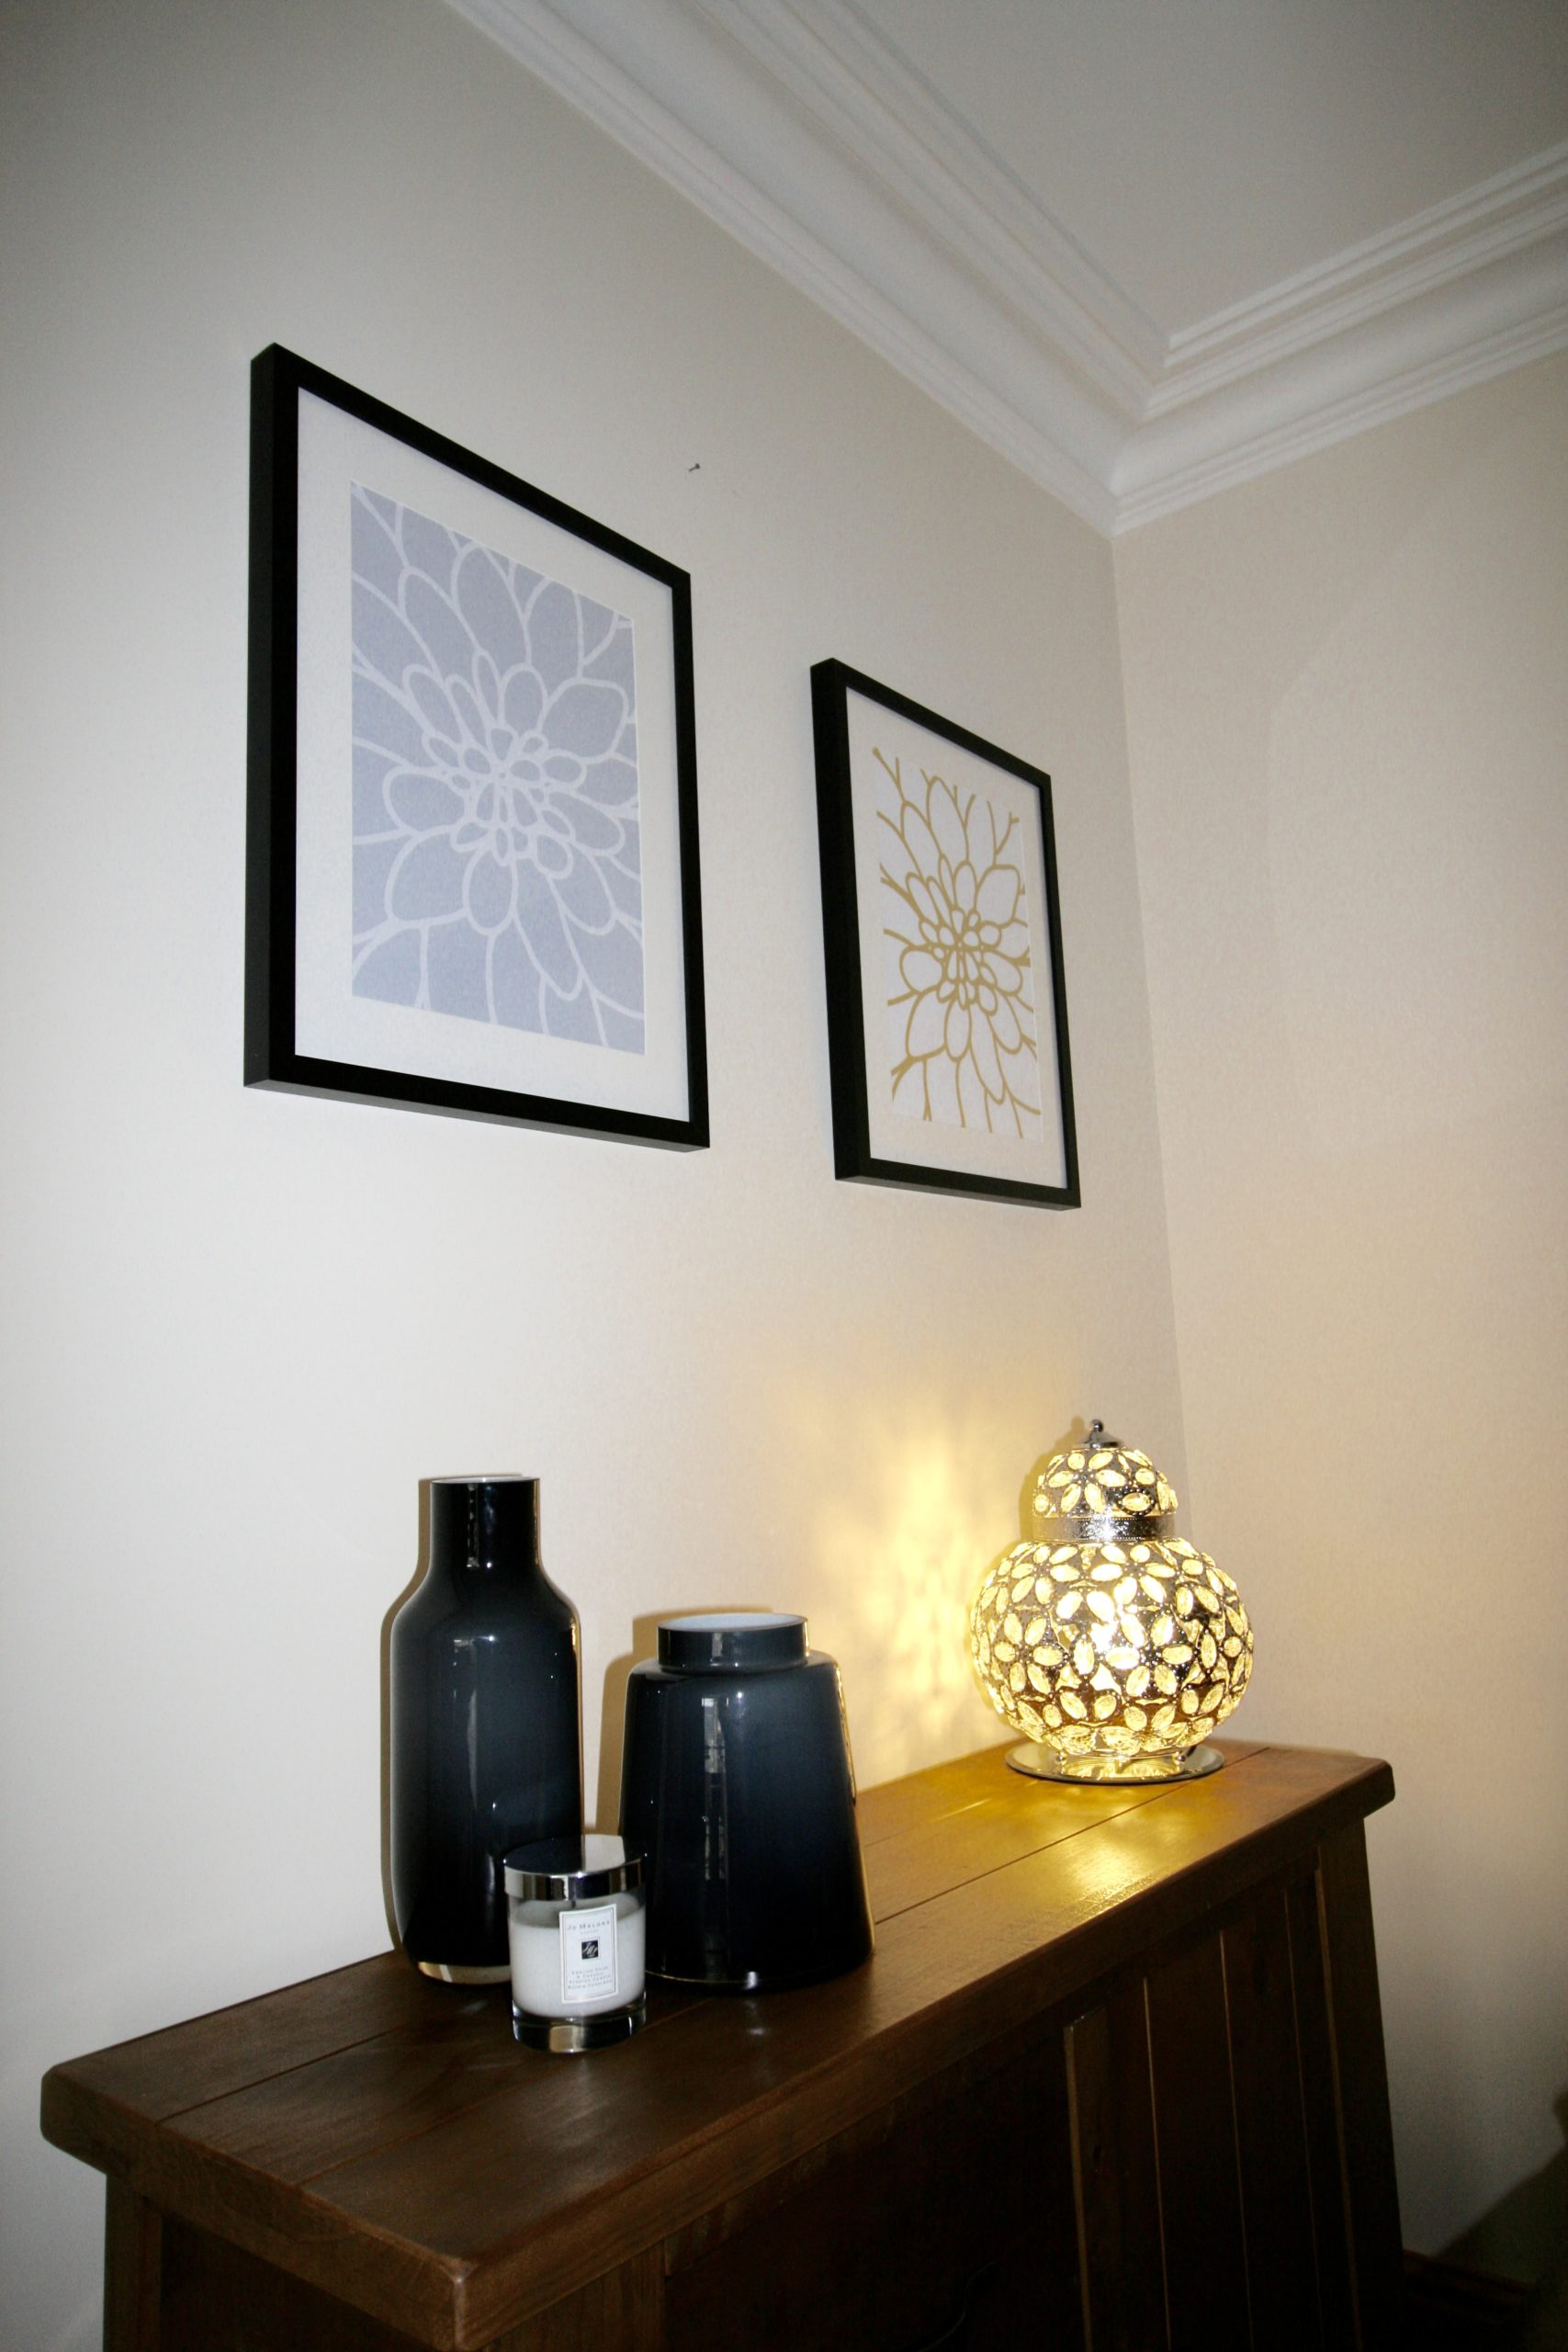 Living room refresh - Art prints from Etsy, frames from Wilko